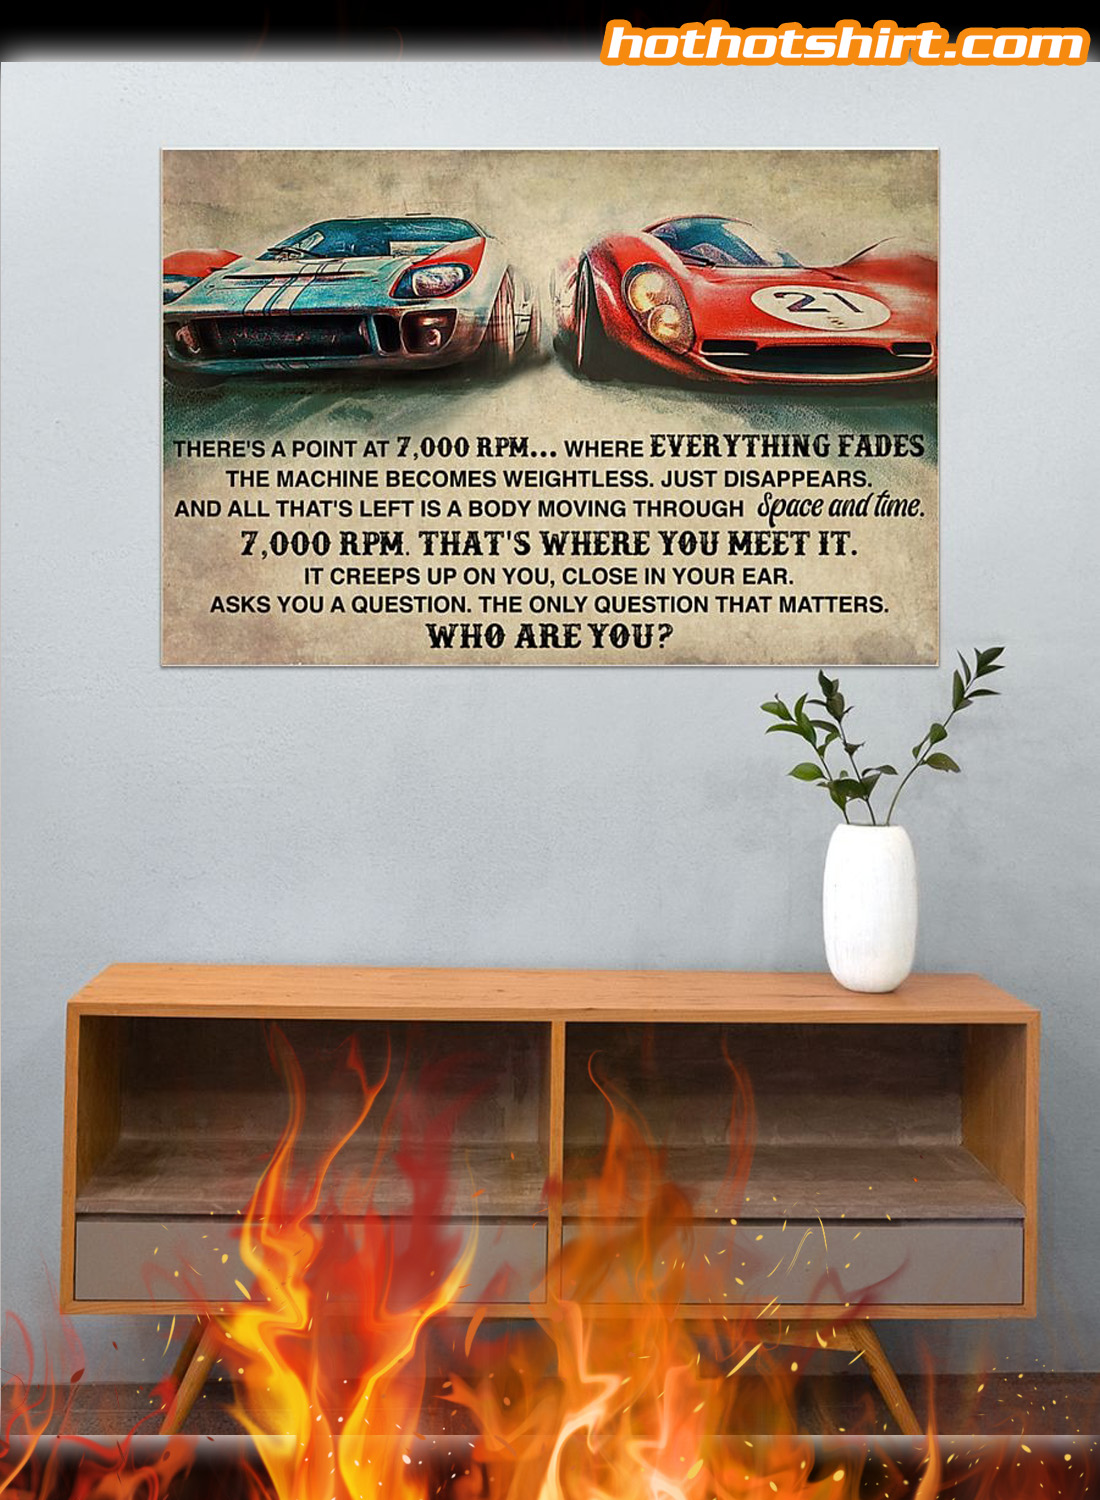 Car racing there's a point at 7000 RPM poster 2